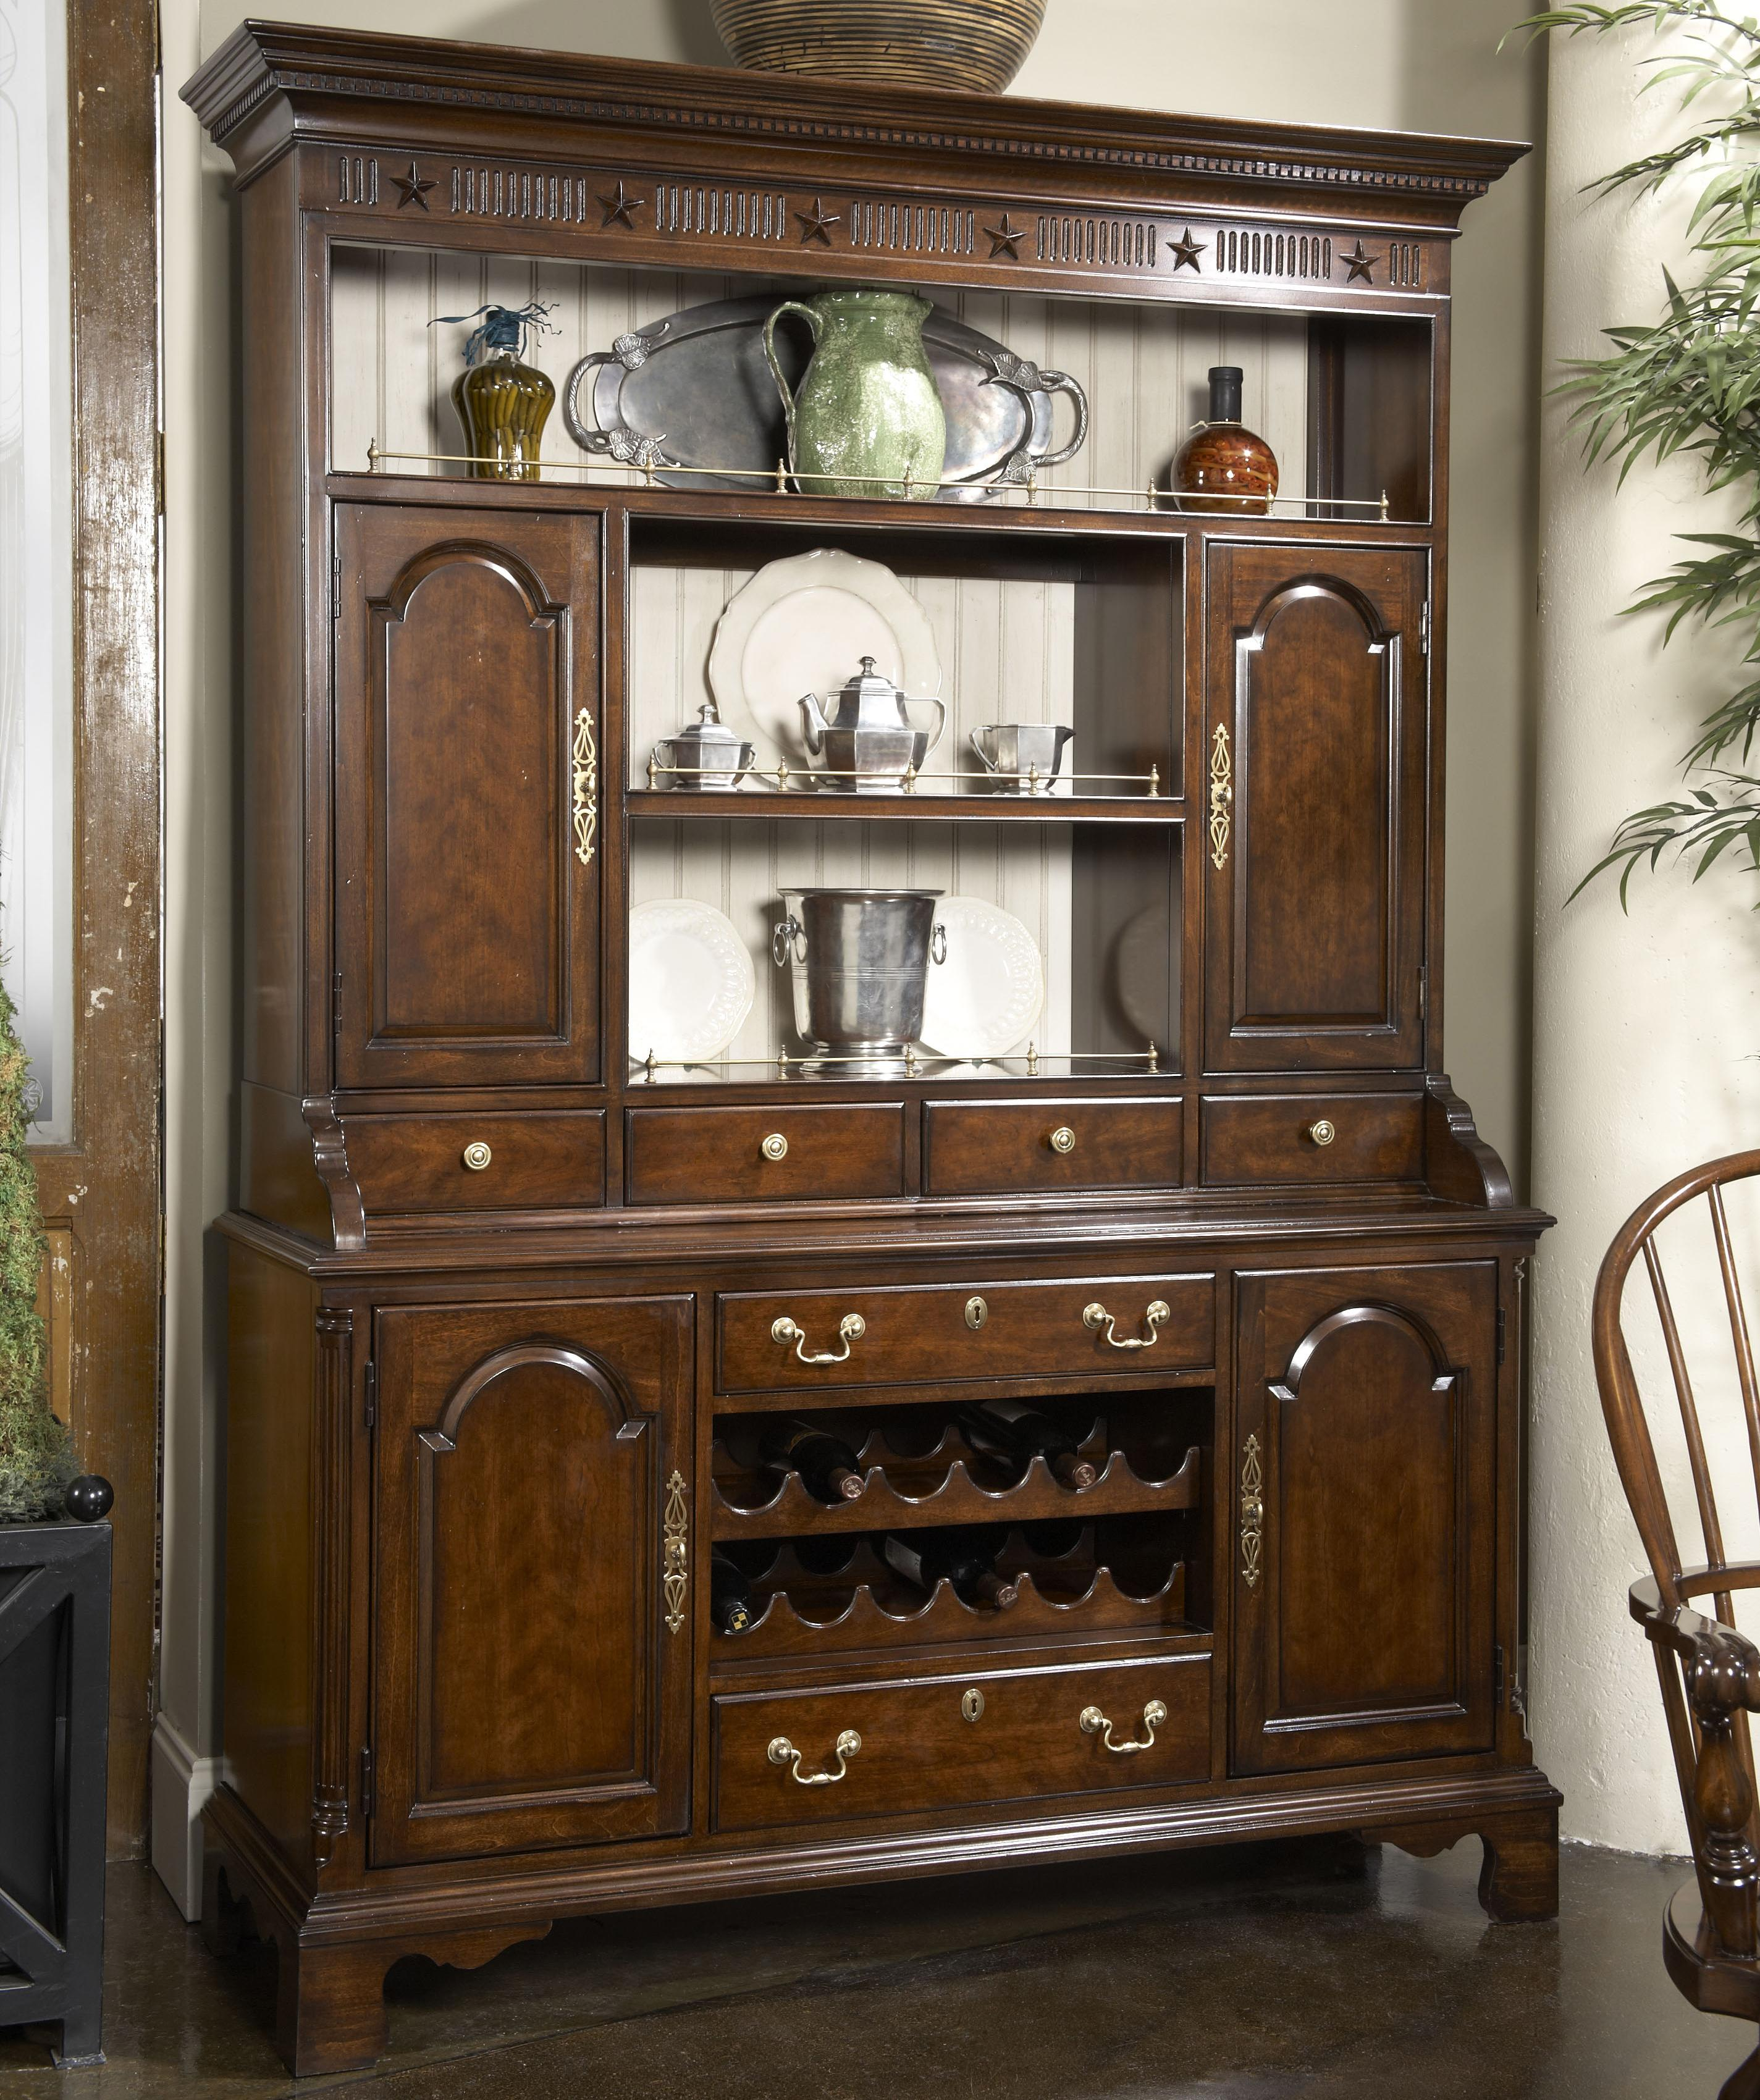 Fine Furniture Design American Cherry Cambridge Welch Cupboard With Reversable Back Panel